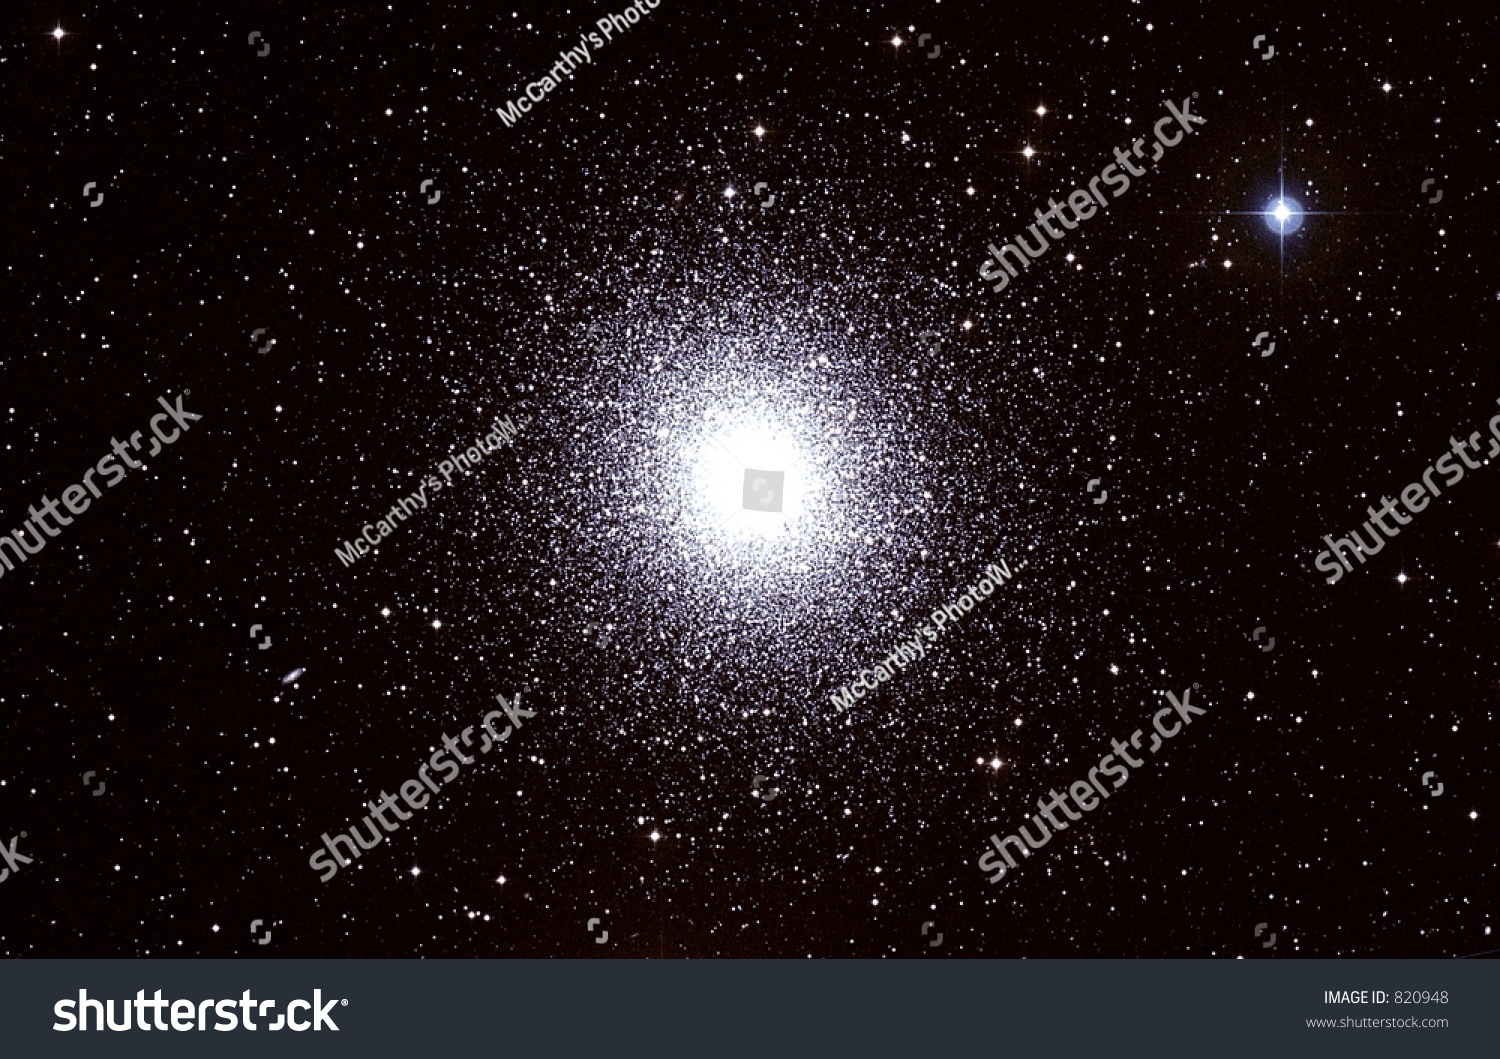 visible star clusters - photo #15